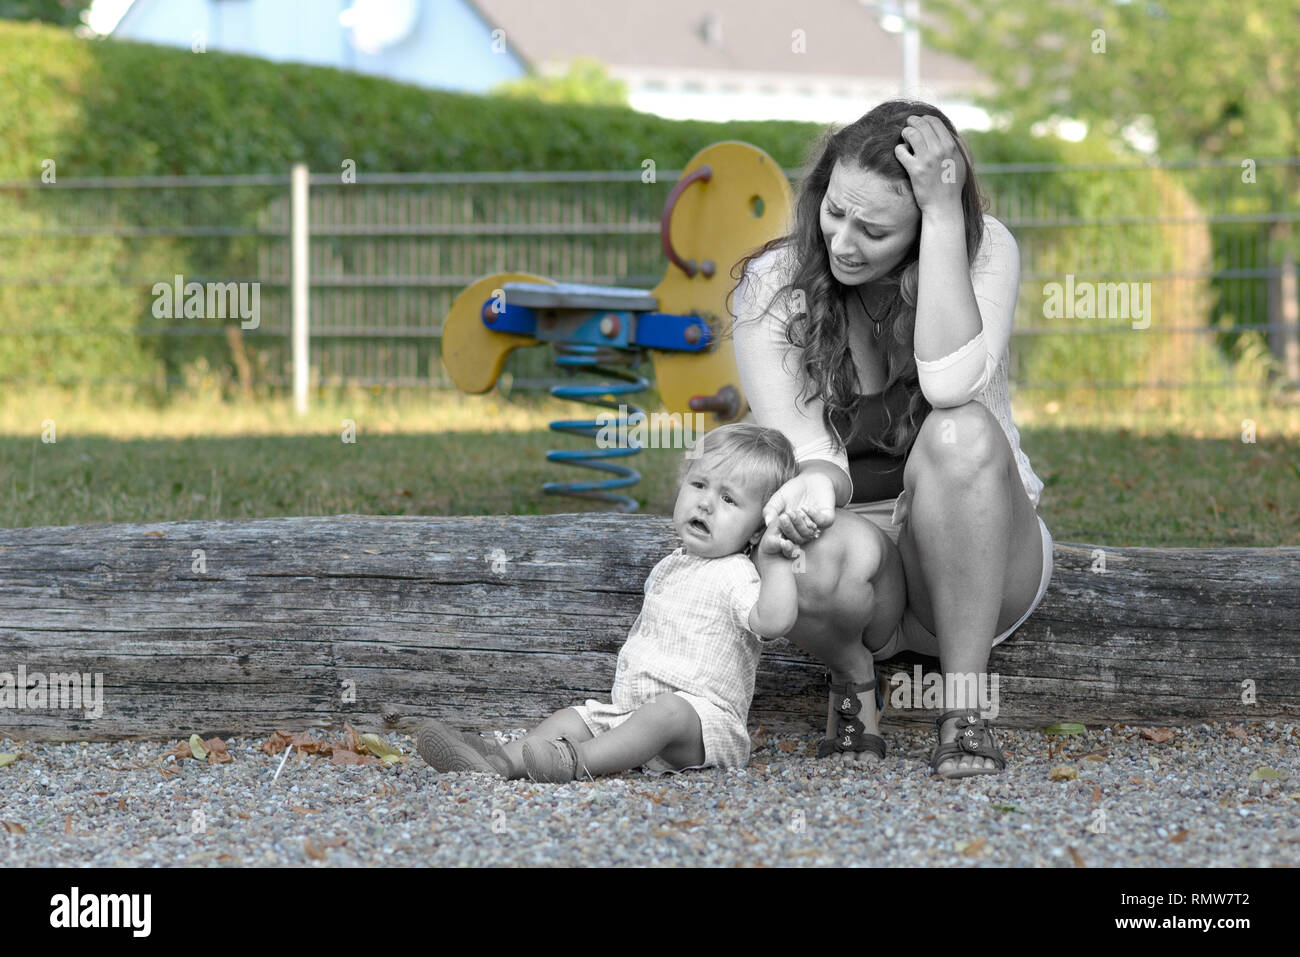 Troubled stressed young mother with her crying unhappy baby son outdoors in a playground in a conceptual image with de-saturated foreground - Stock Image